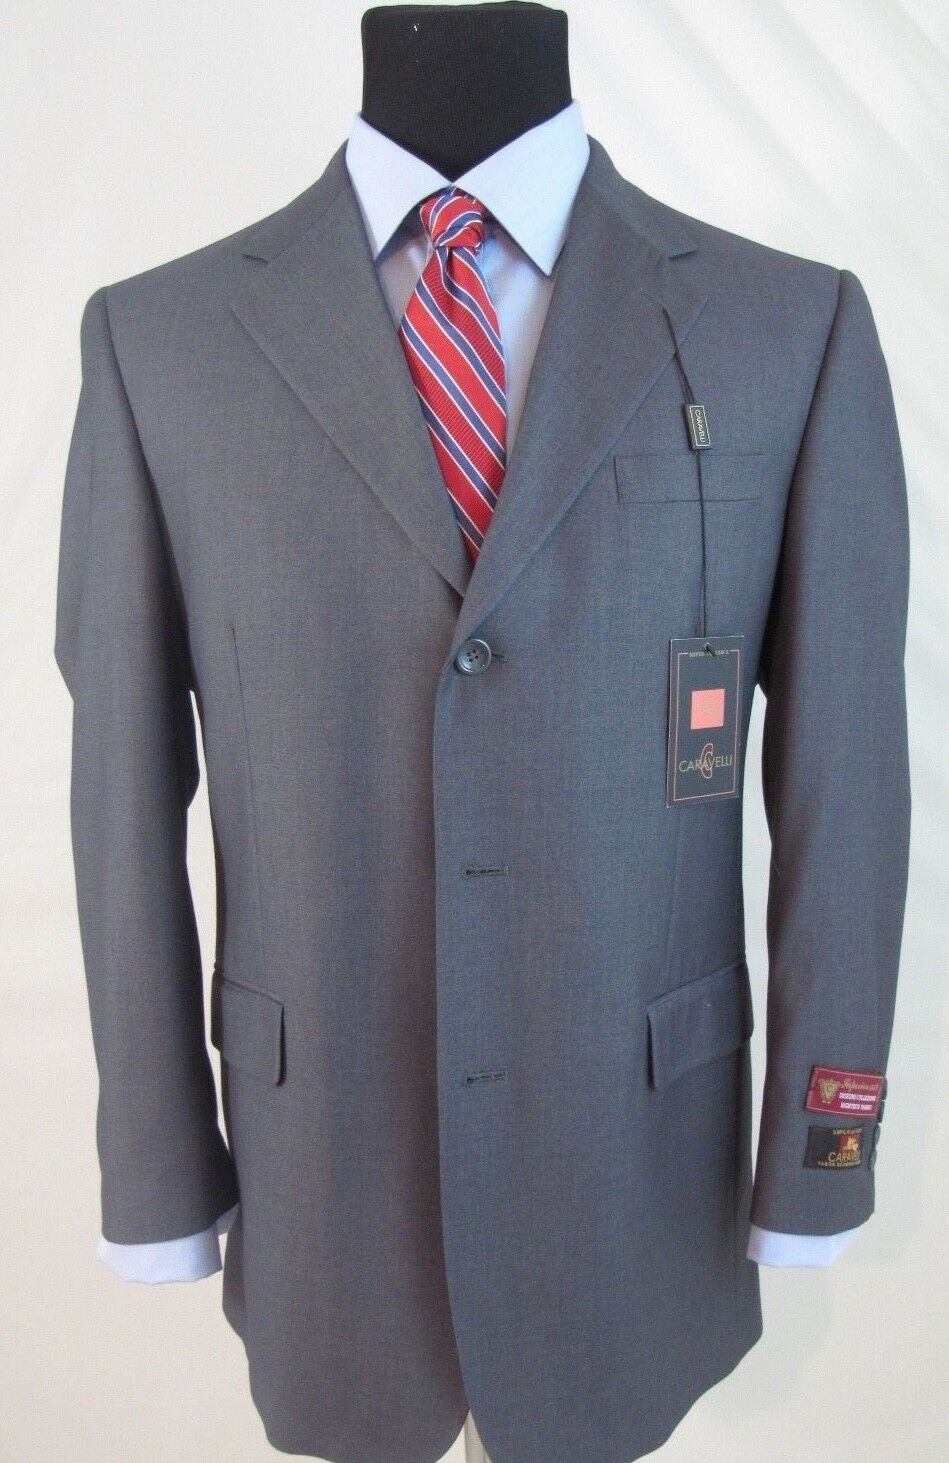 f02ce5ec Caravelli Suit 2Pc Superior150s High Tech Fabric 3 BTN Grey 40R 34W NWT